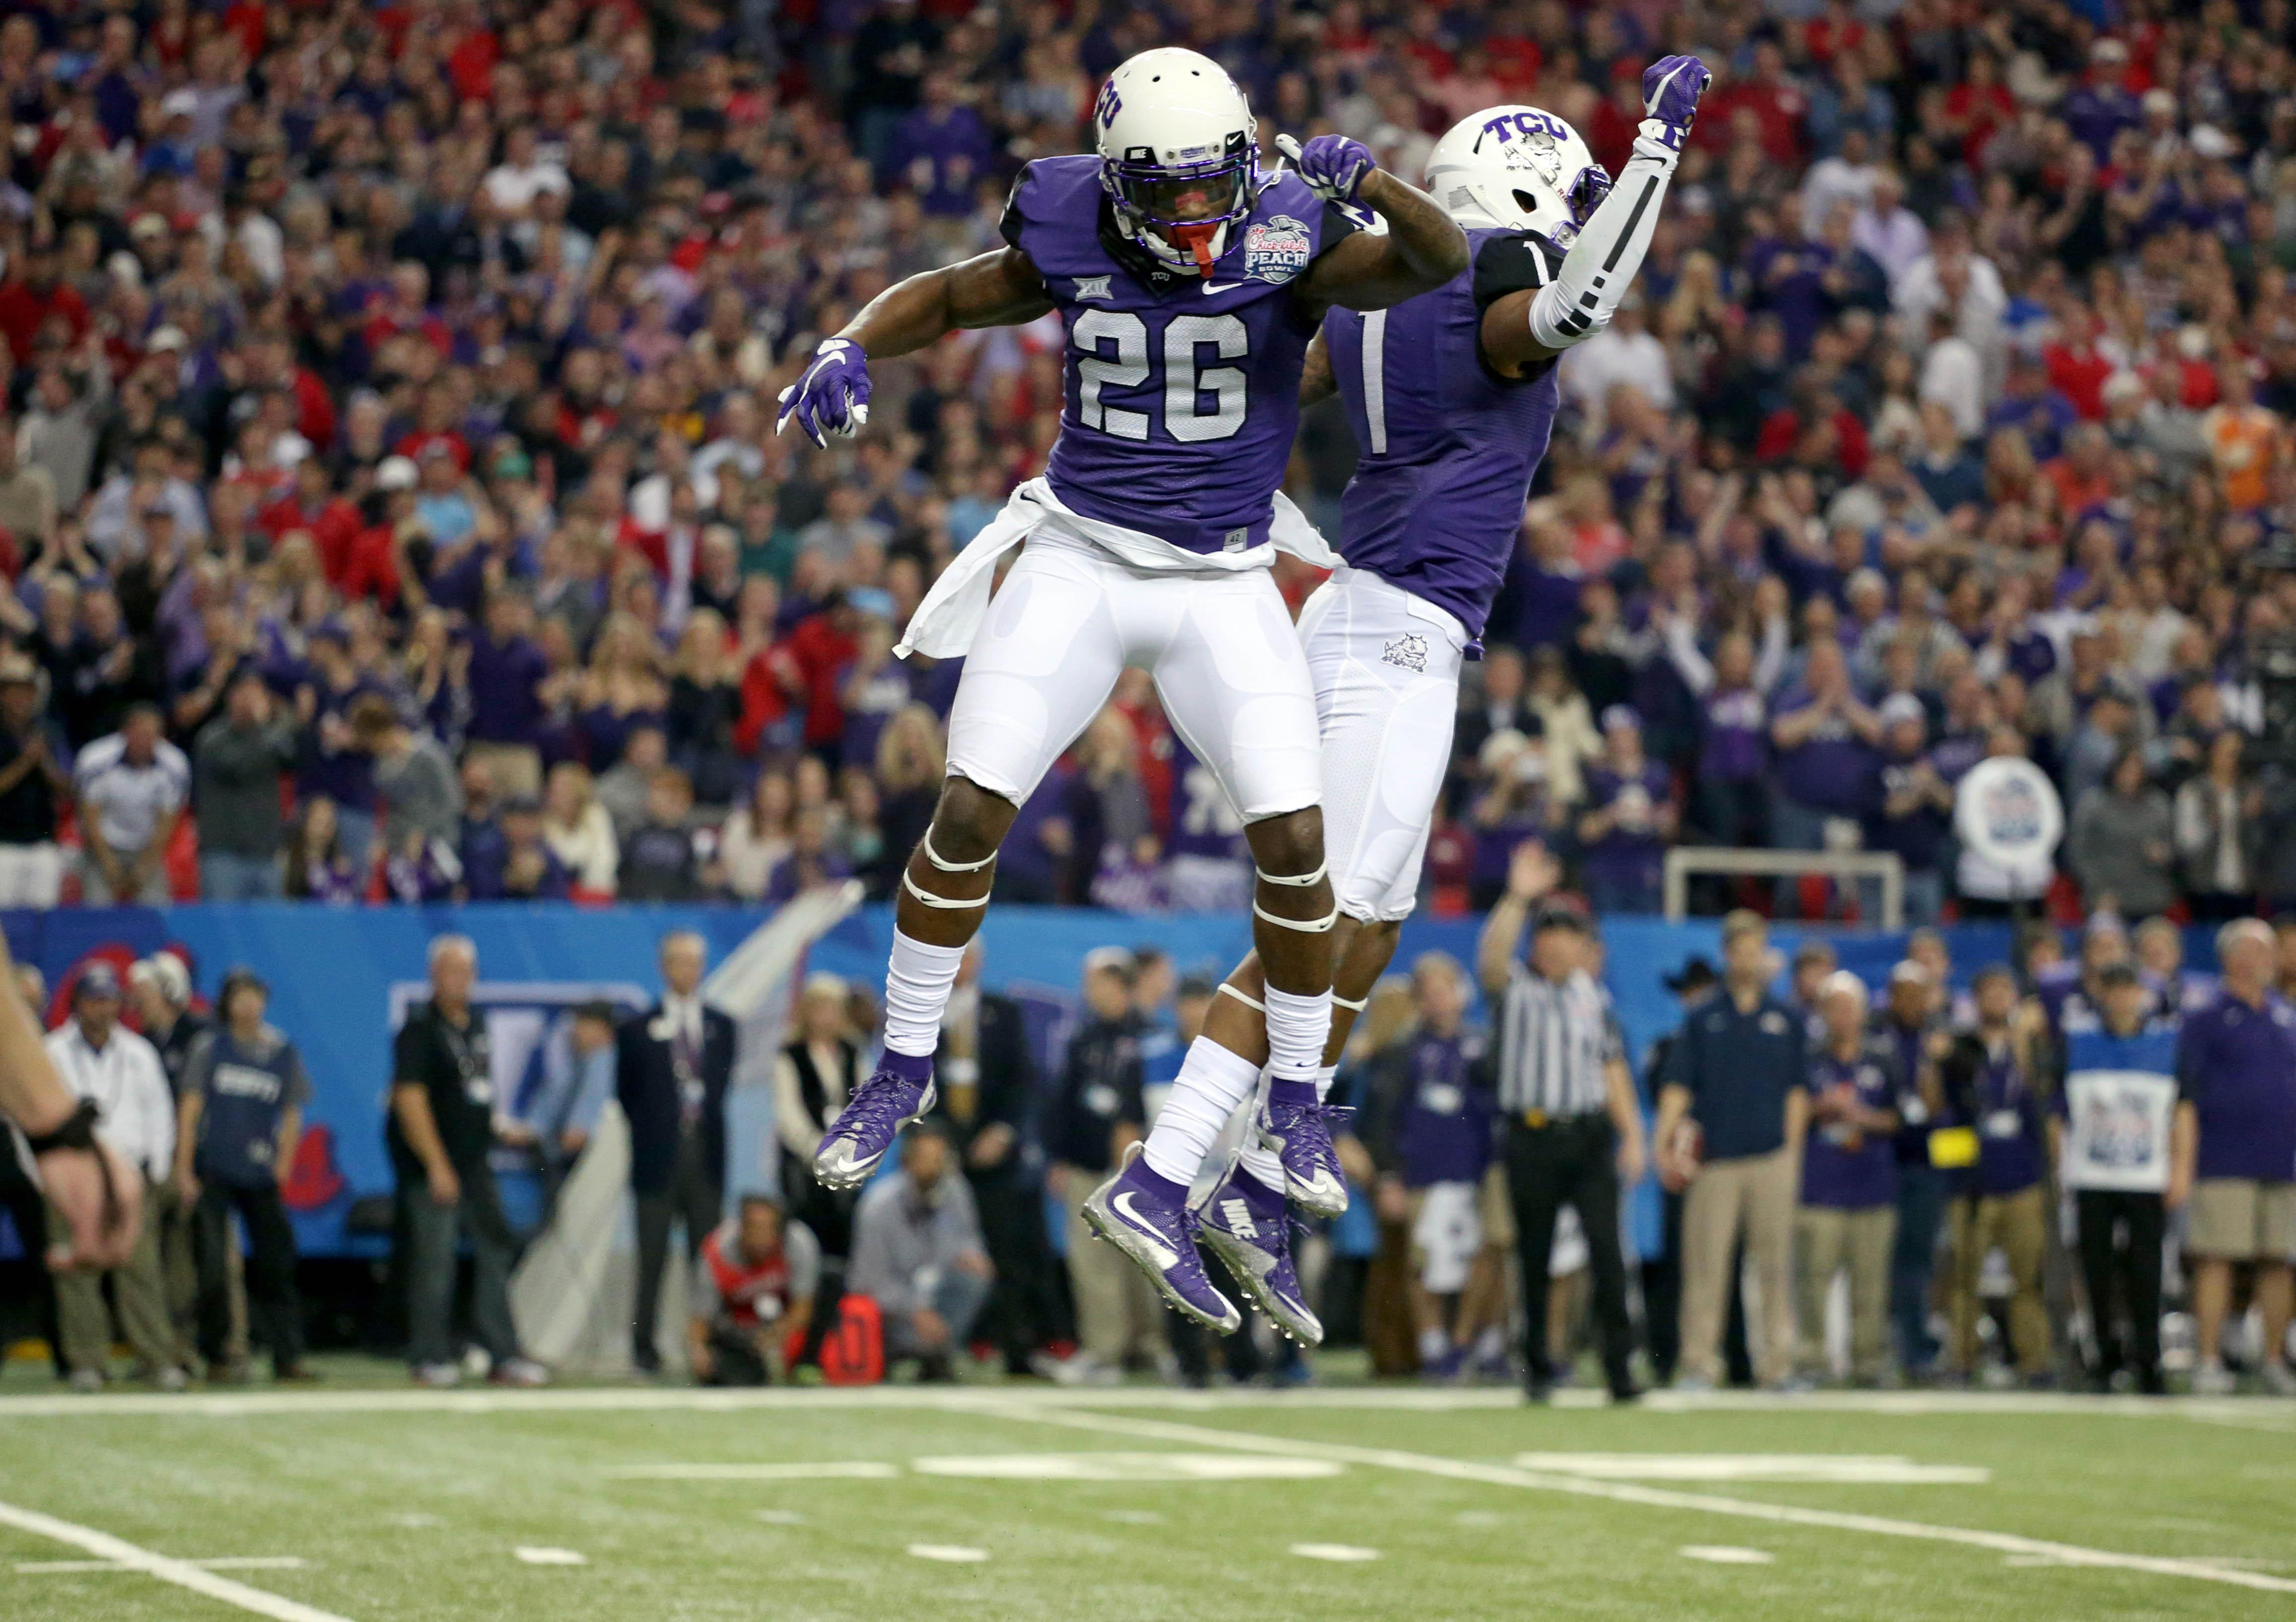 View the complete TCU Horned Frogs football team schedule on ESPNcom Includes home and away bye weeks bowl schedules and printable schedules